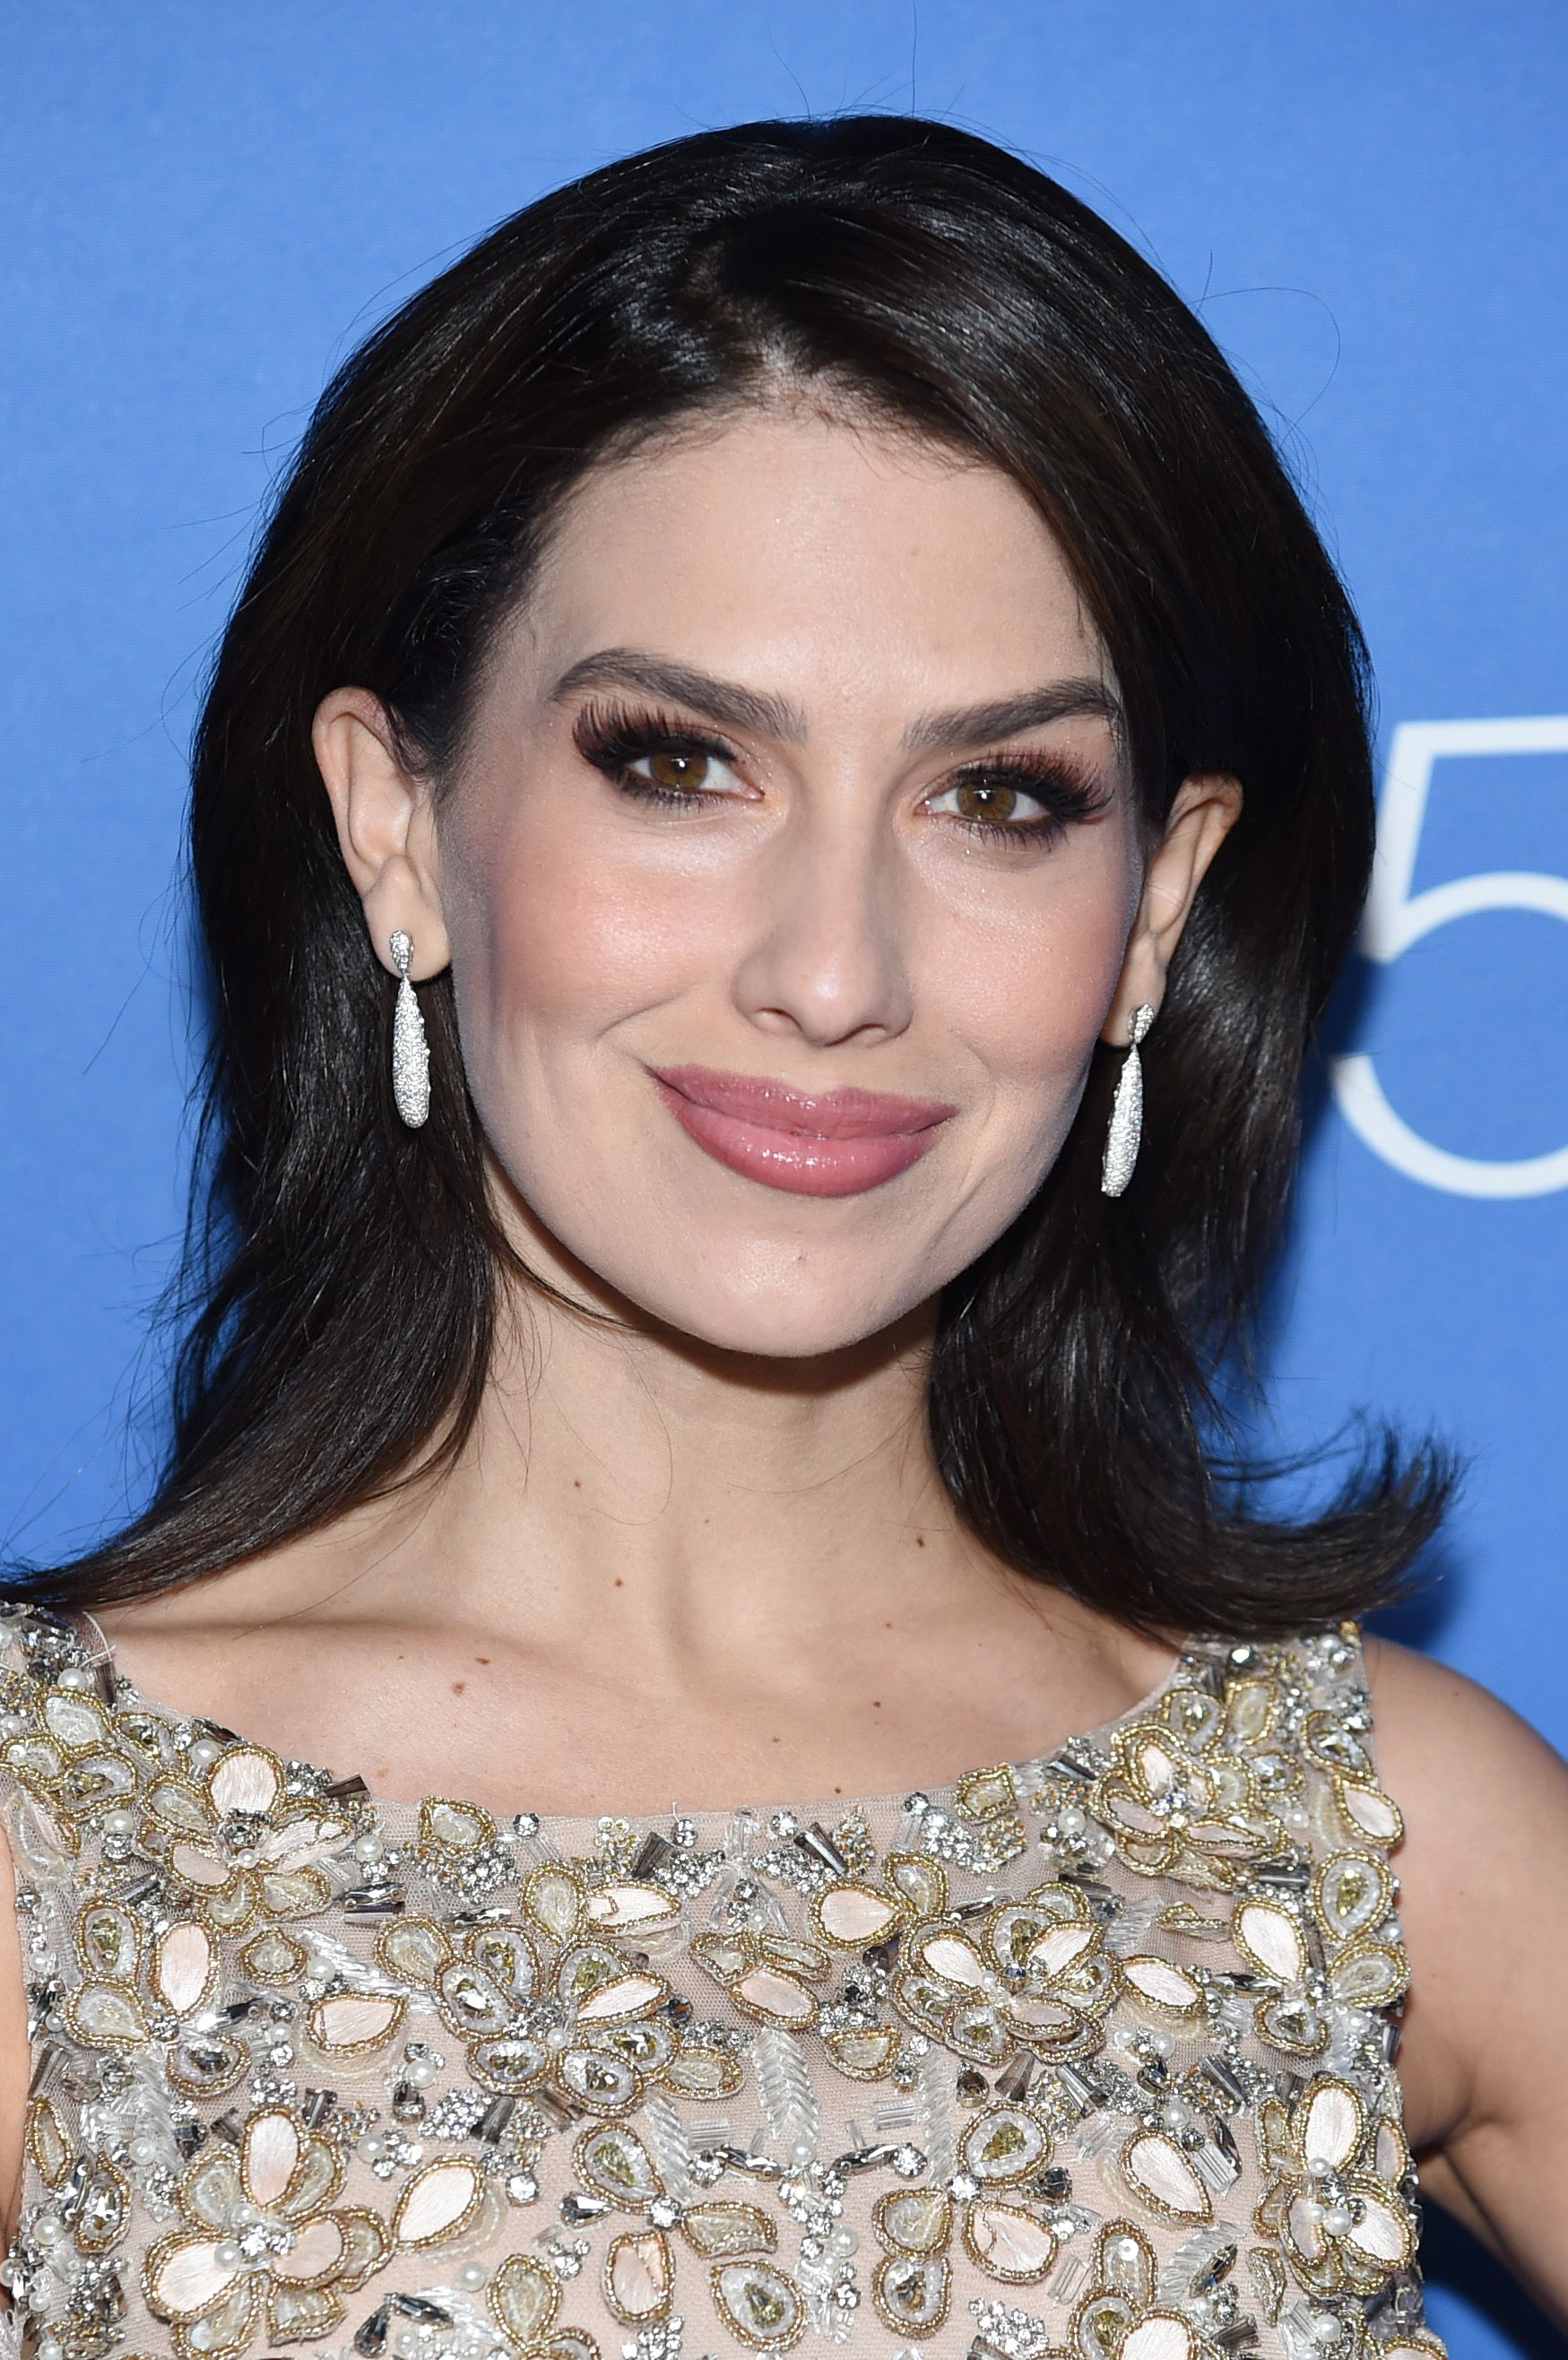 Hilaria Baldwin at the American Museum Of Natural History 2019 Gala at the American Museum of Natural History on November 21, 2019 | Getty Images